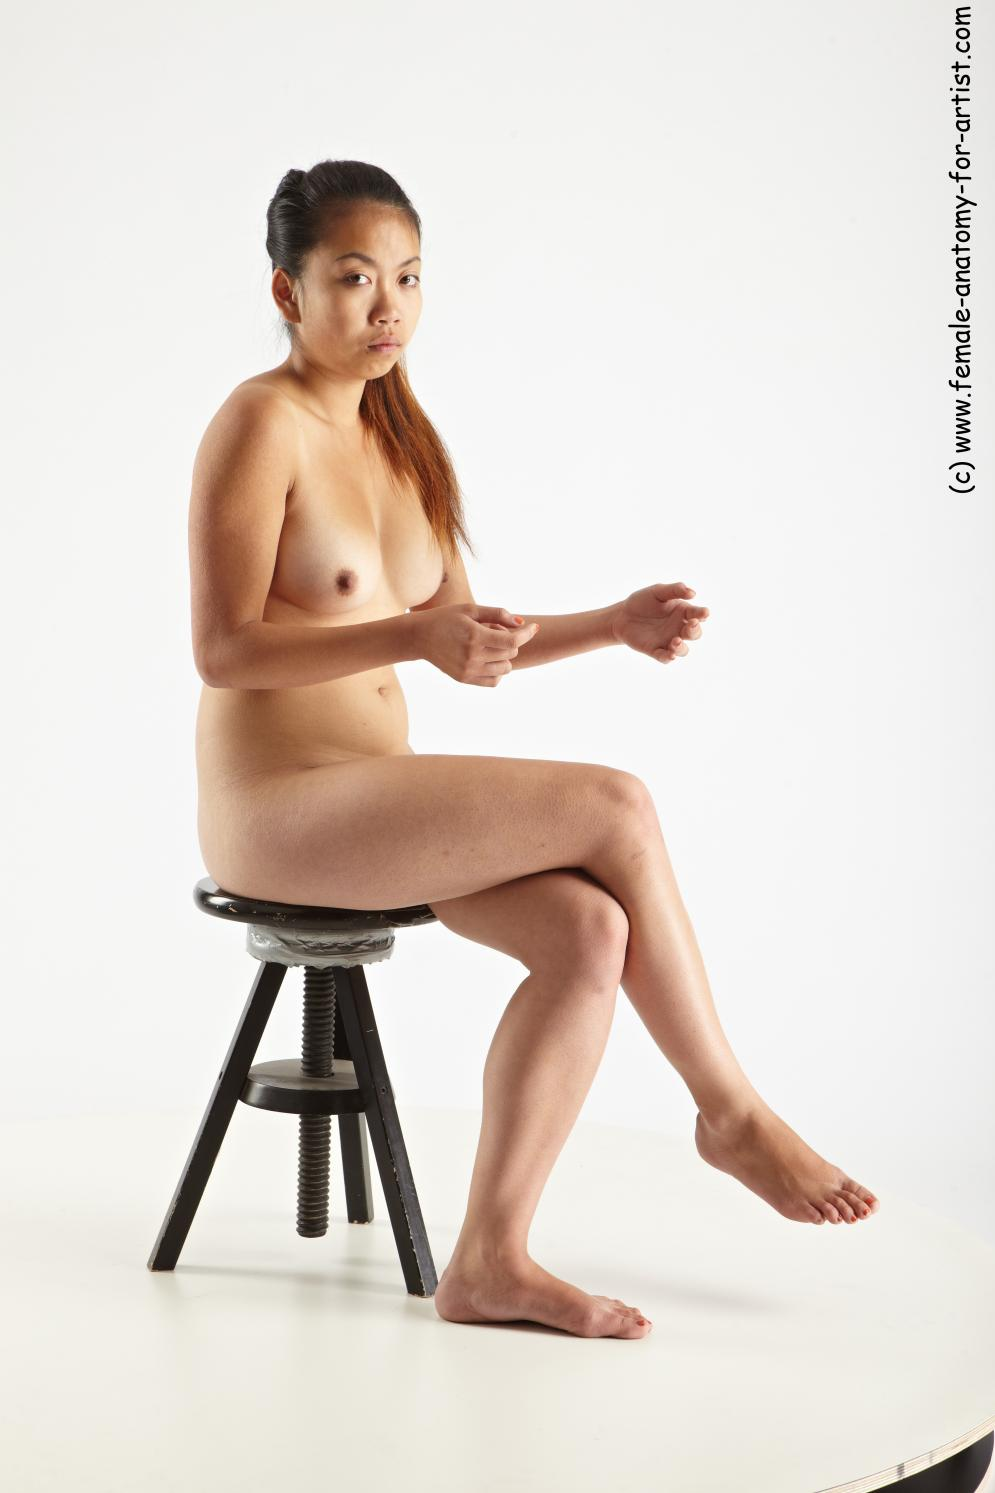 Image from Female-Anatomy-for-Artists.com - marianna_sitting_24.jpg